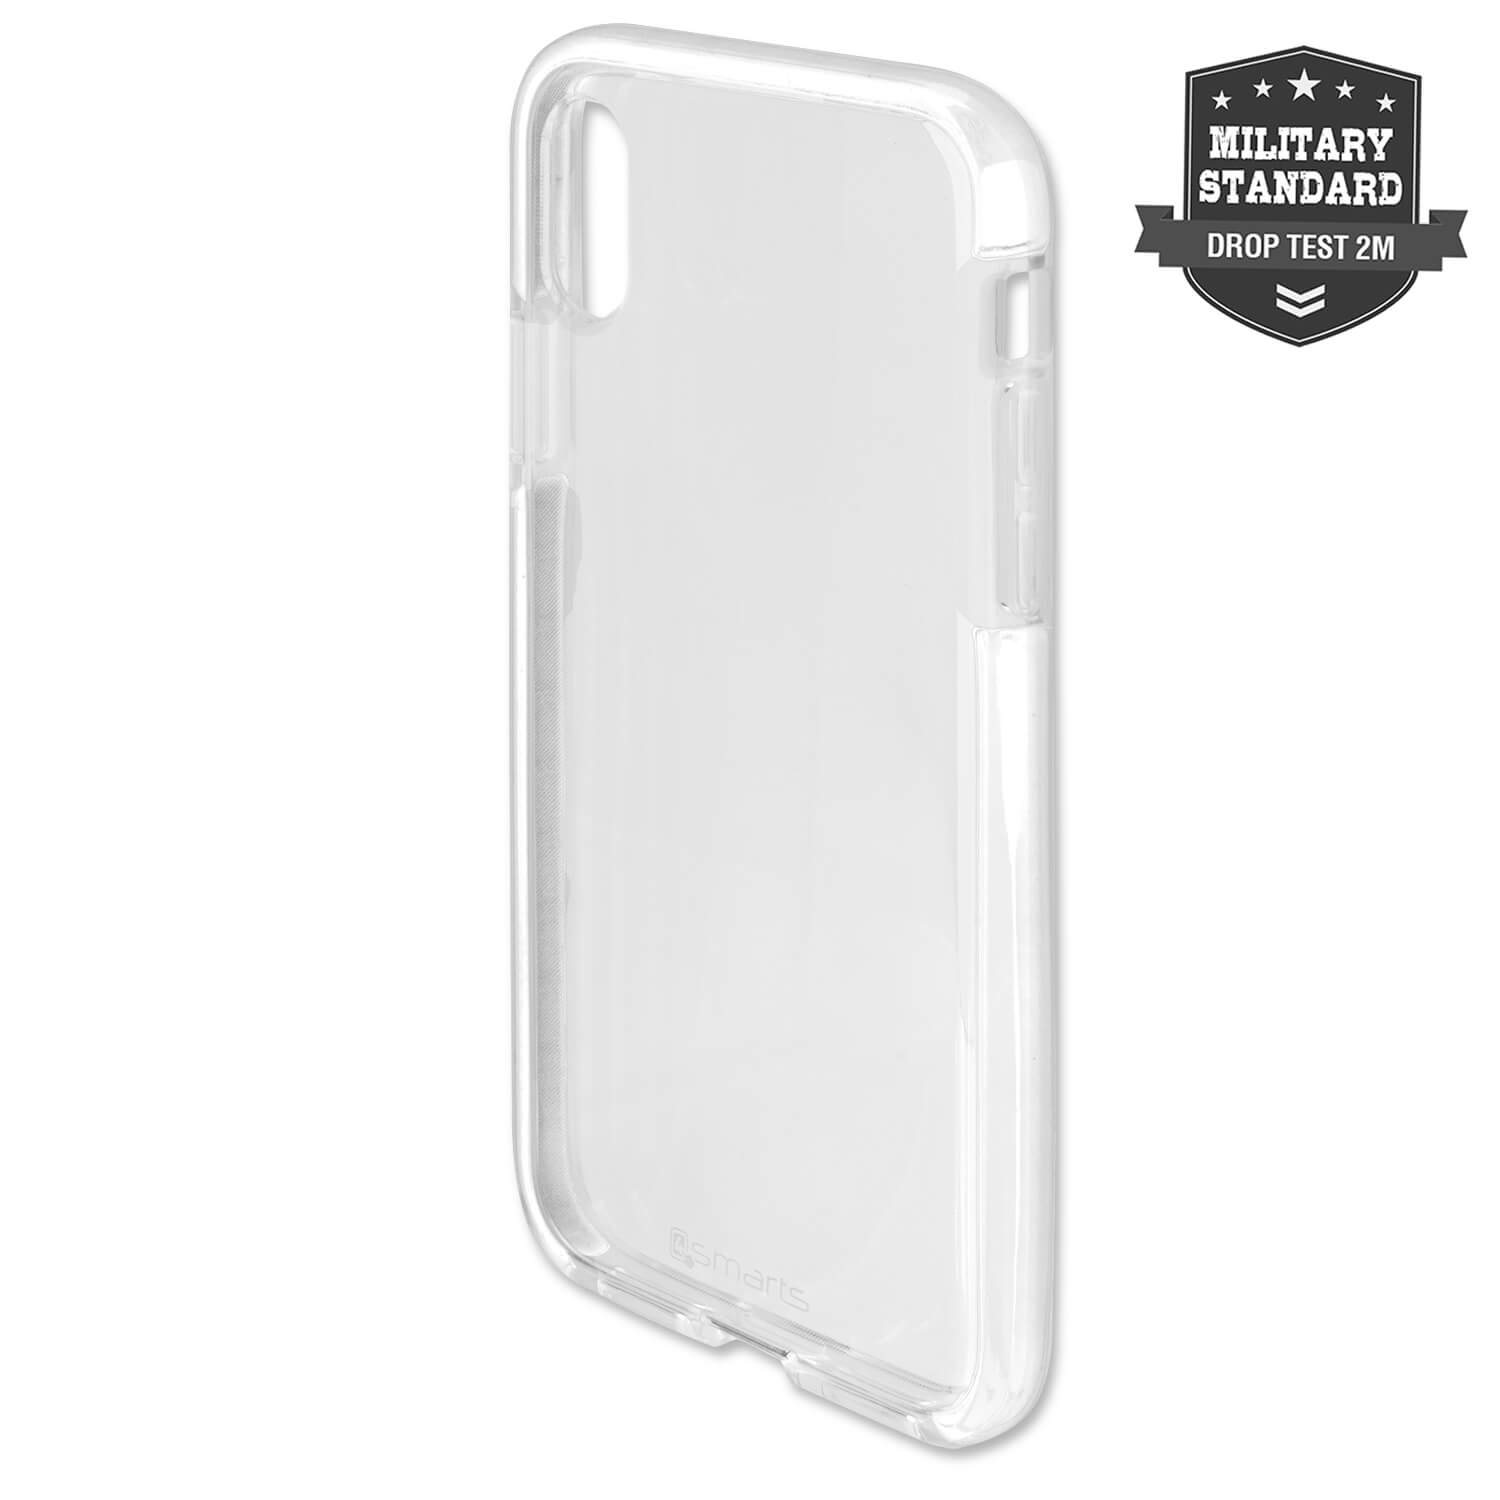 4smarts Soft Cover Airy Shield - хибриден удароустойчив кейс за iPhone XS, iPhone X (бял)